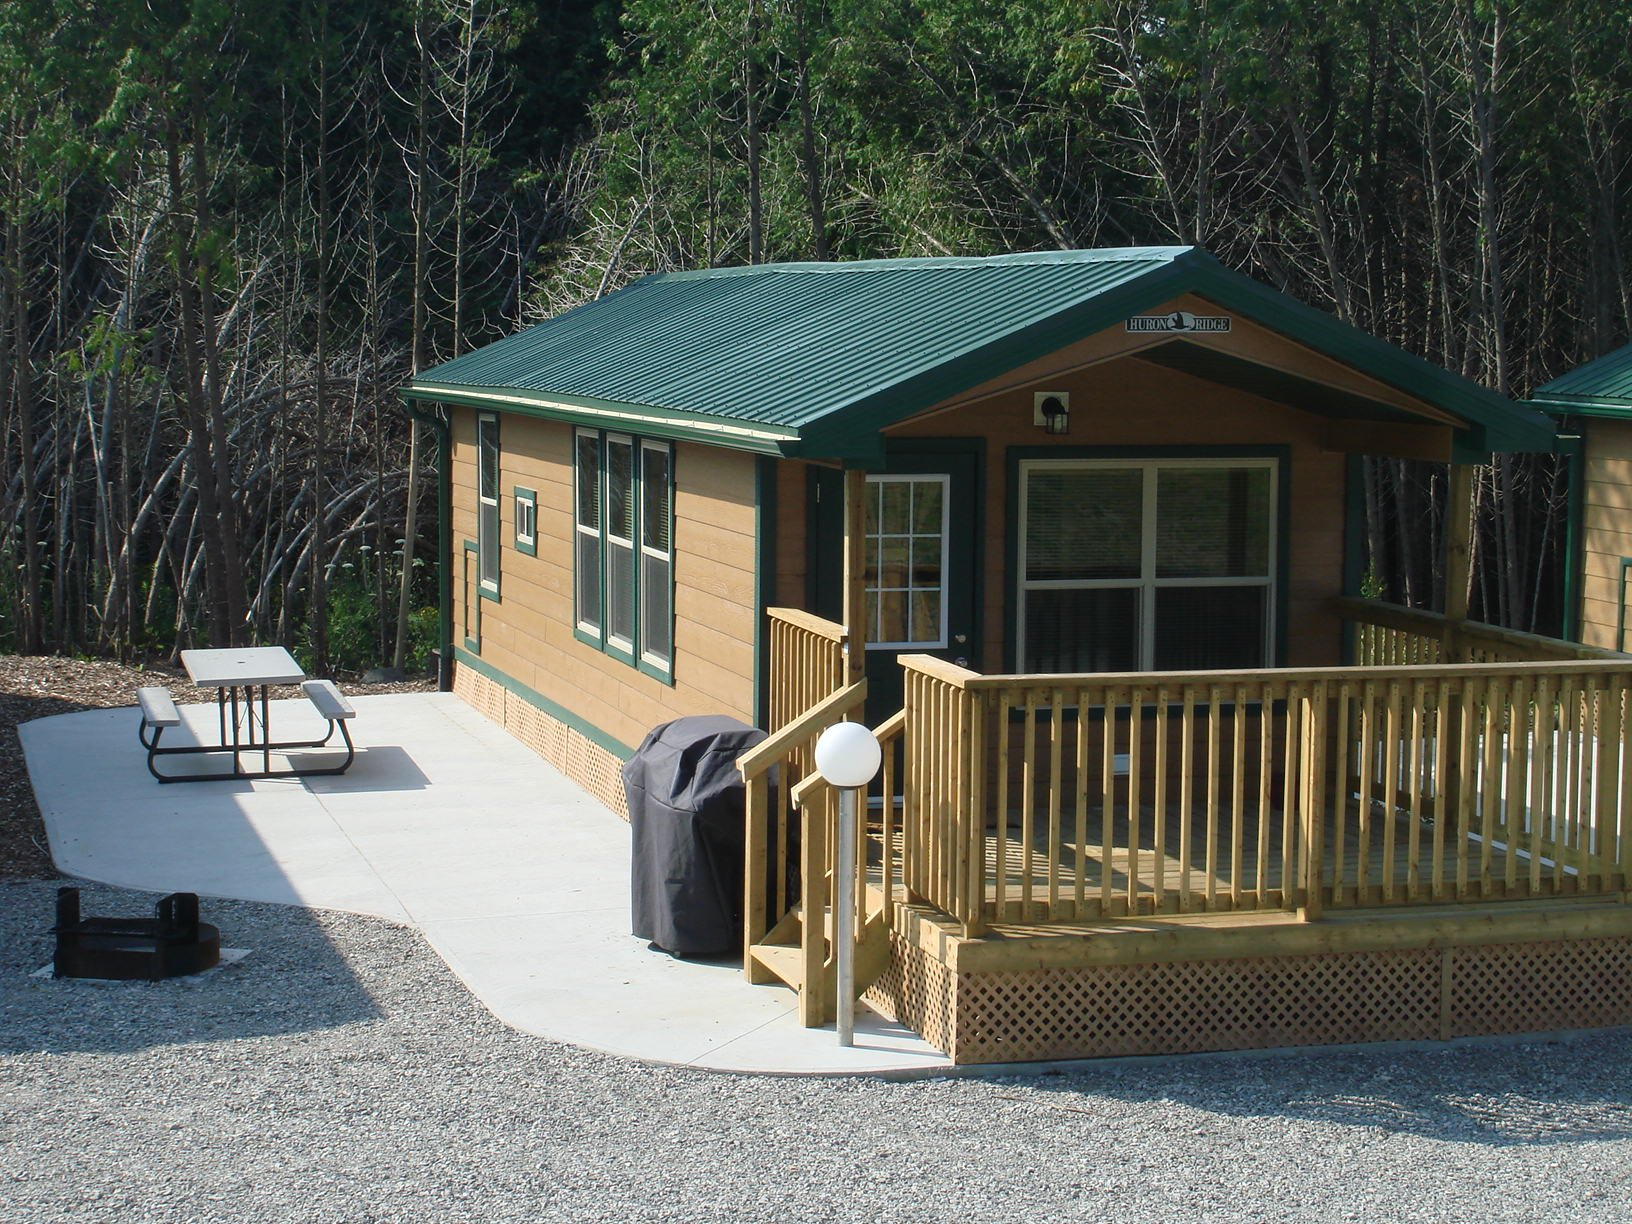 Barrie koa campground find campgrounds near springwater for Nearby campgrounds with cabins